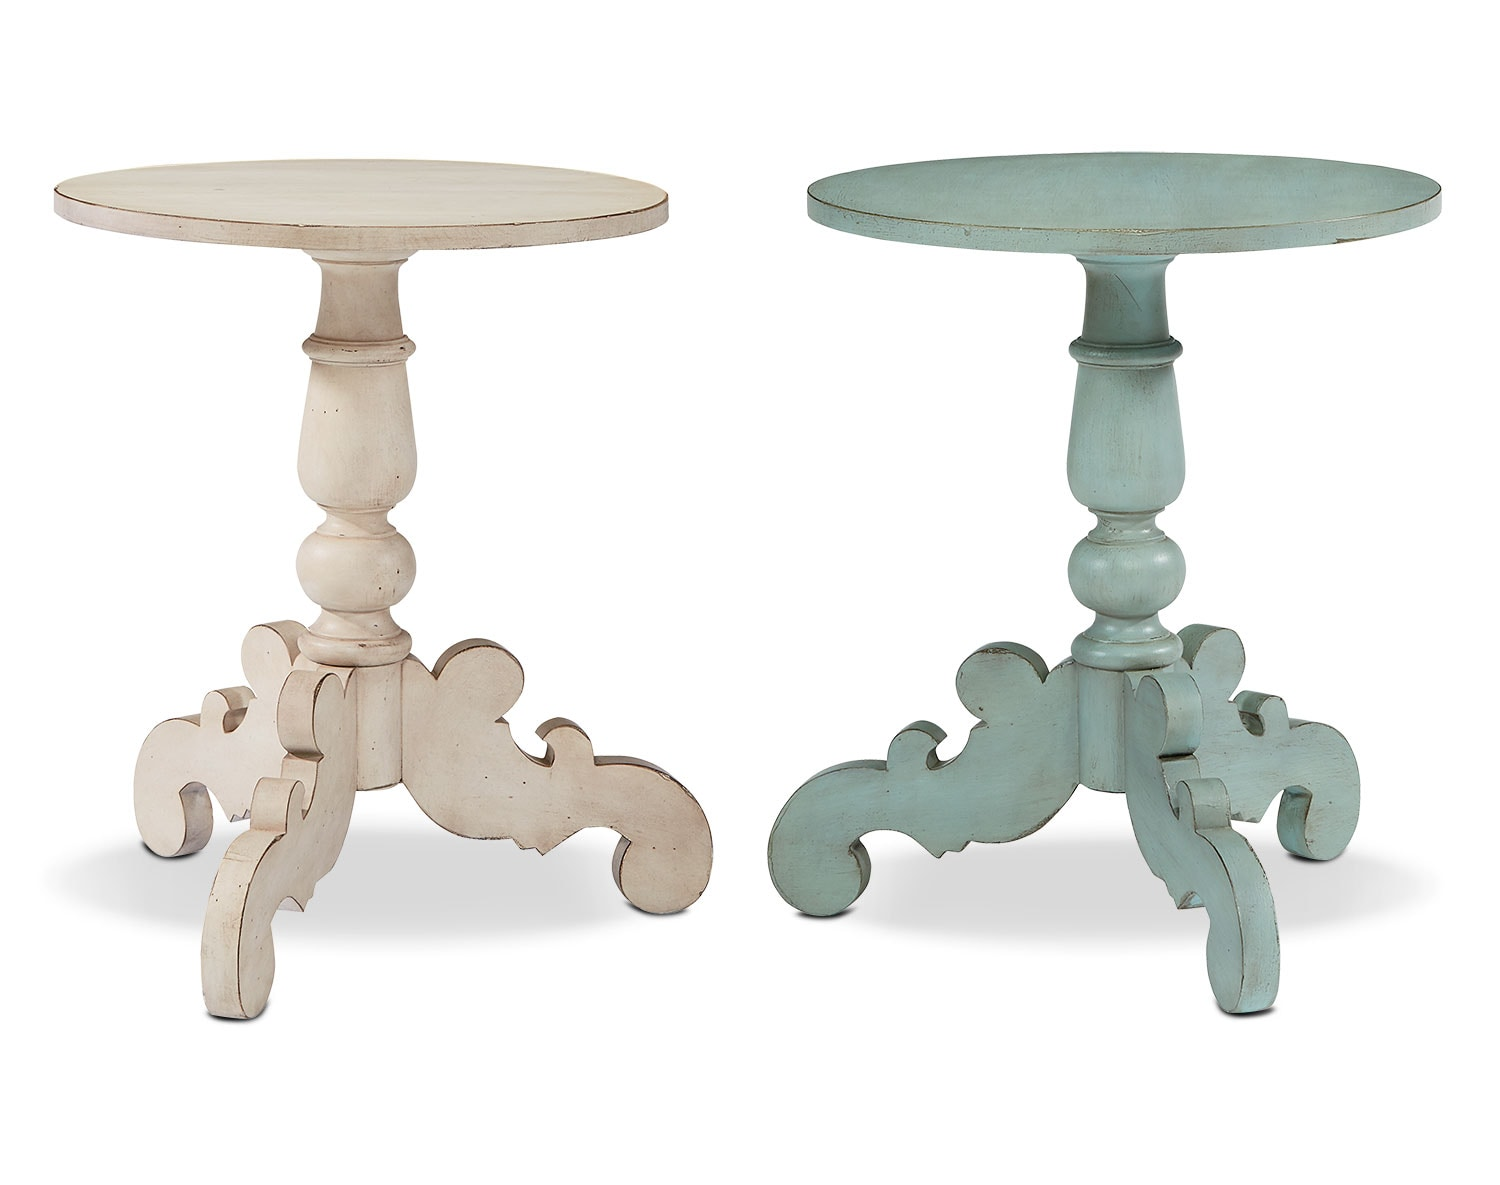 The French Inspired Occasional Table Collection